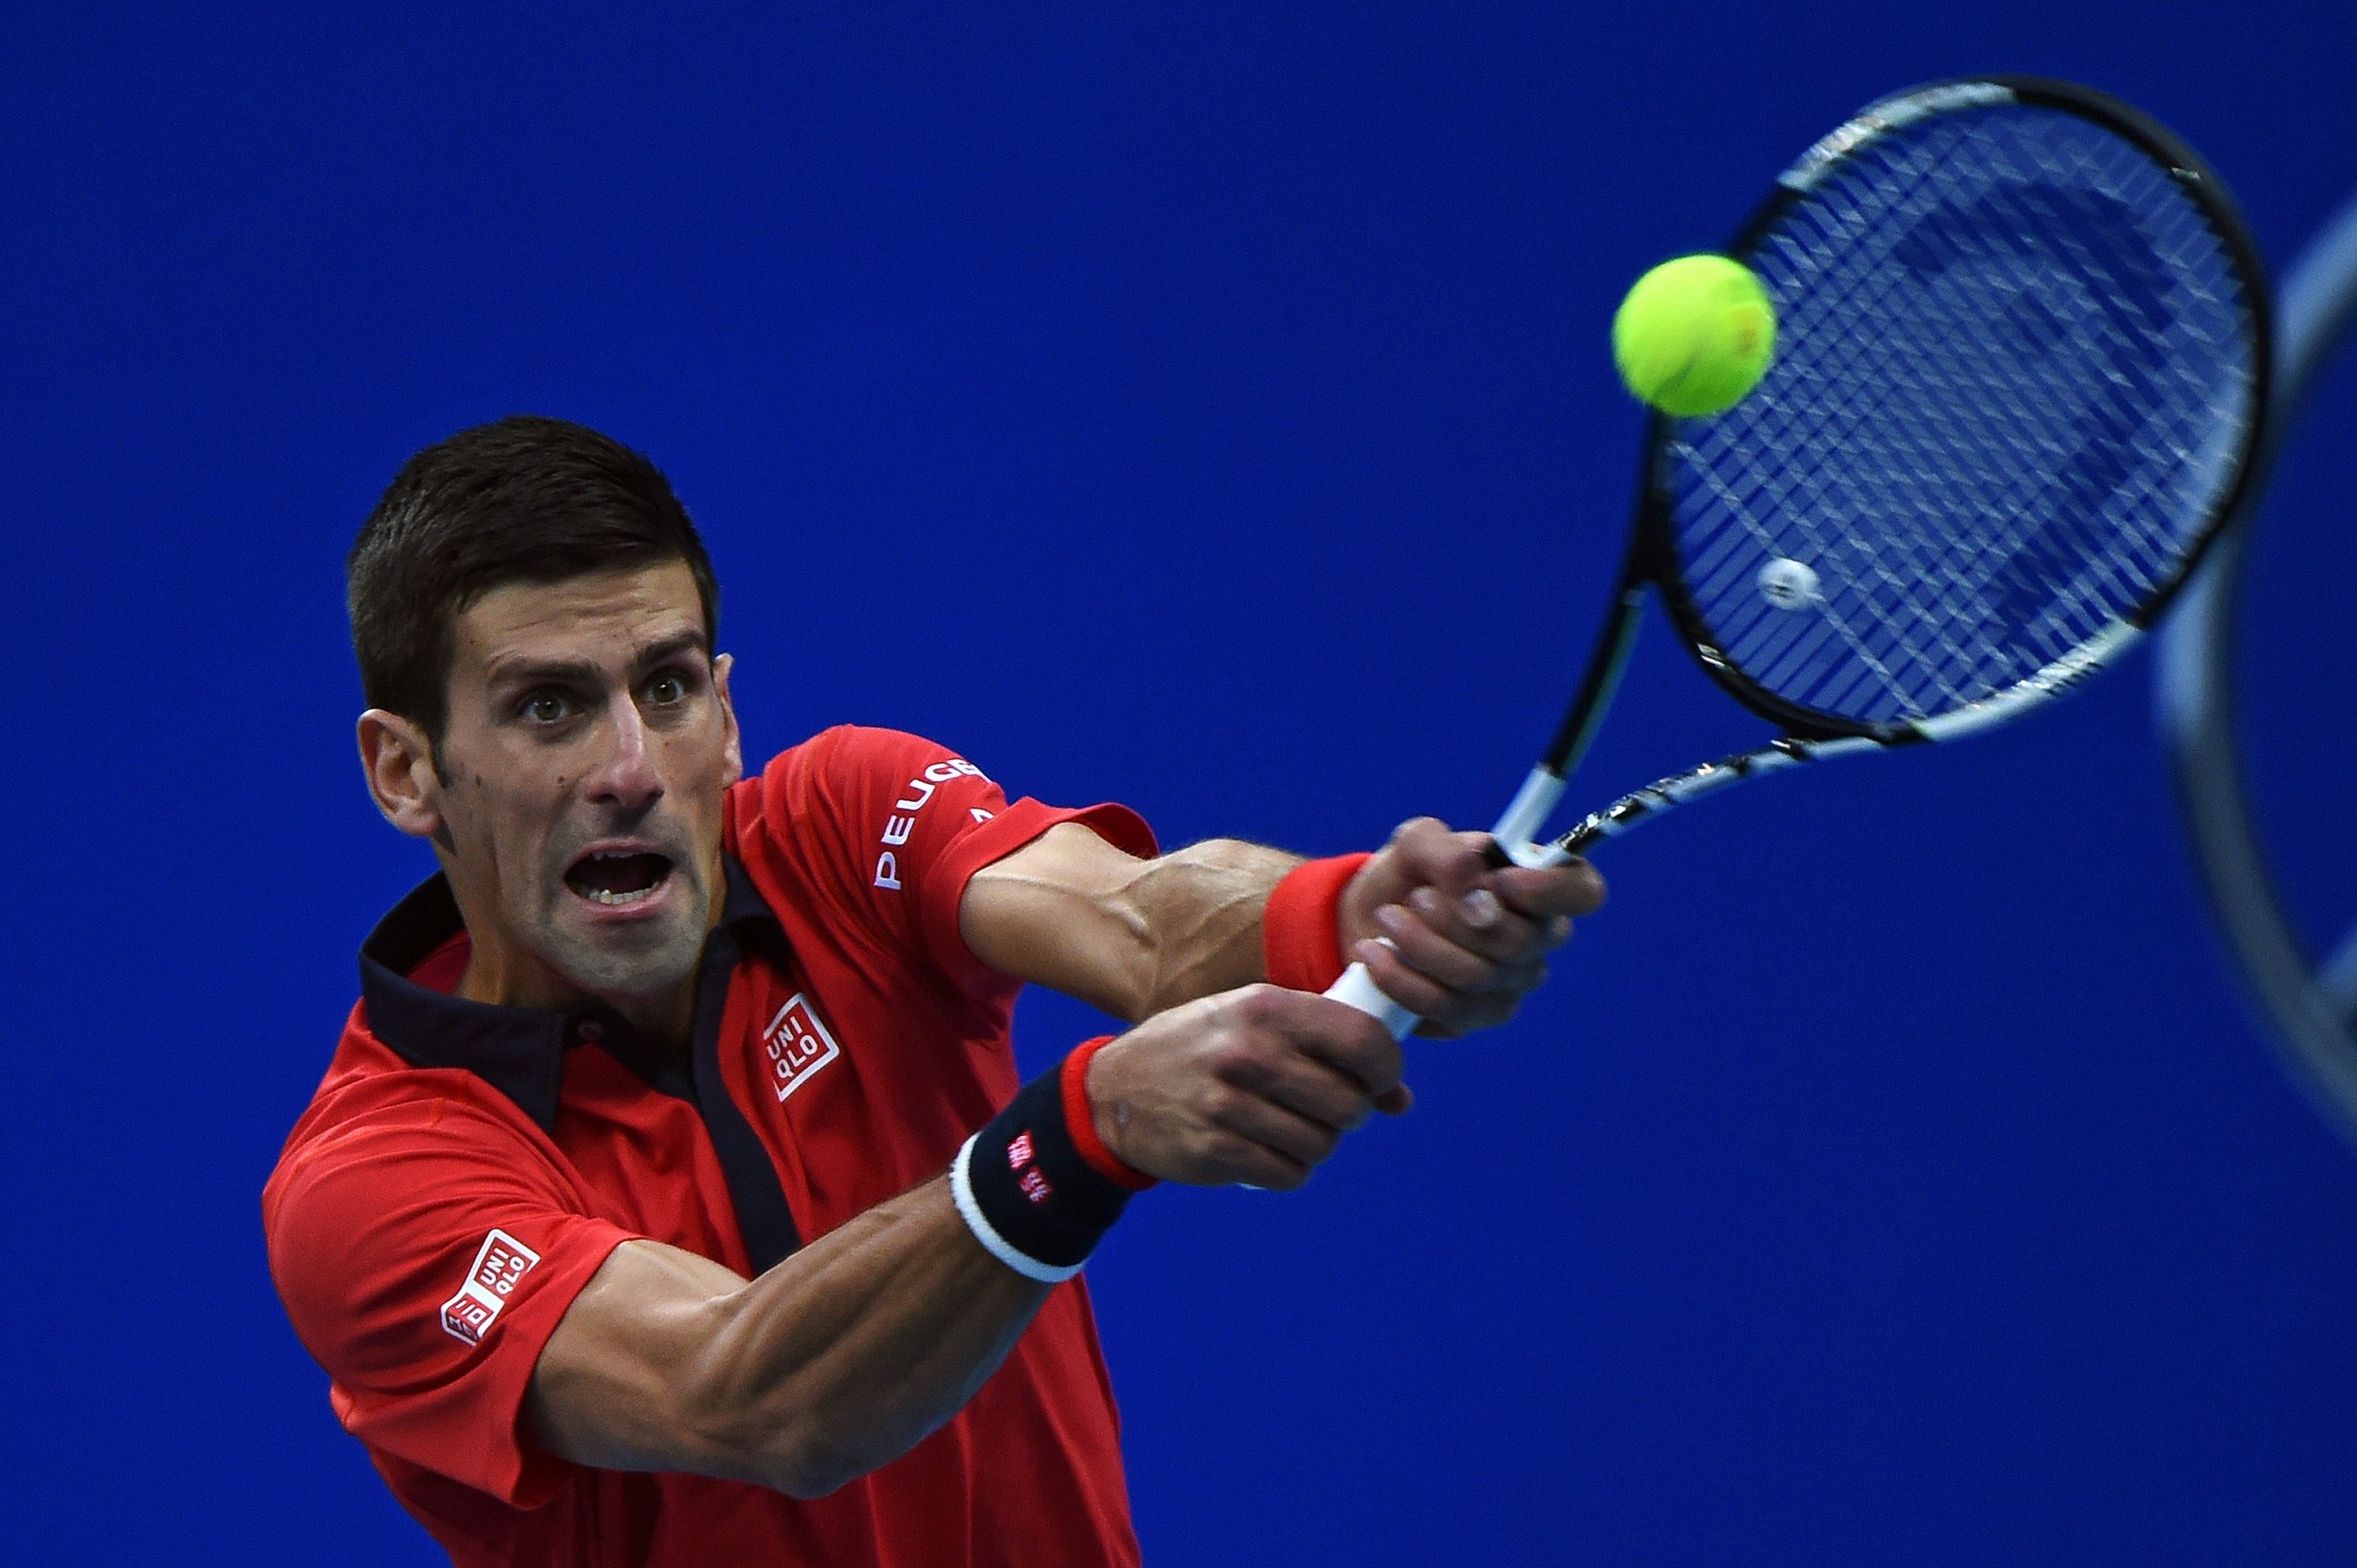 Novak Djokovic of Serbia hits a return against Zhang Ze of China during their men's singles second round match at the China Open tennis tournament in Beijing on October 8, 2015. AFP PHOTO / GREG BAKER